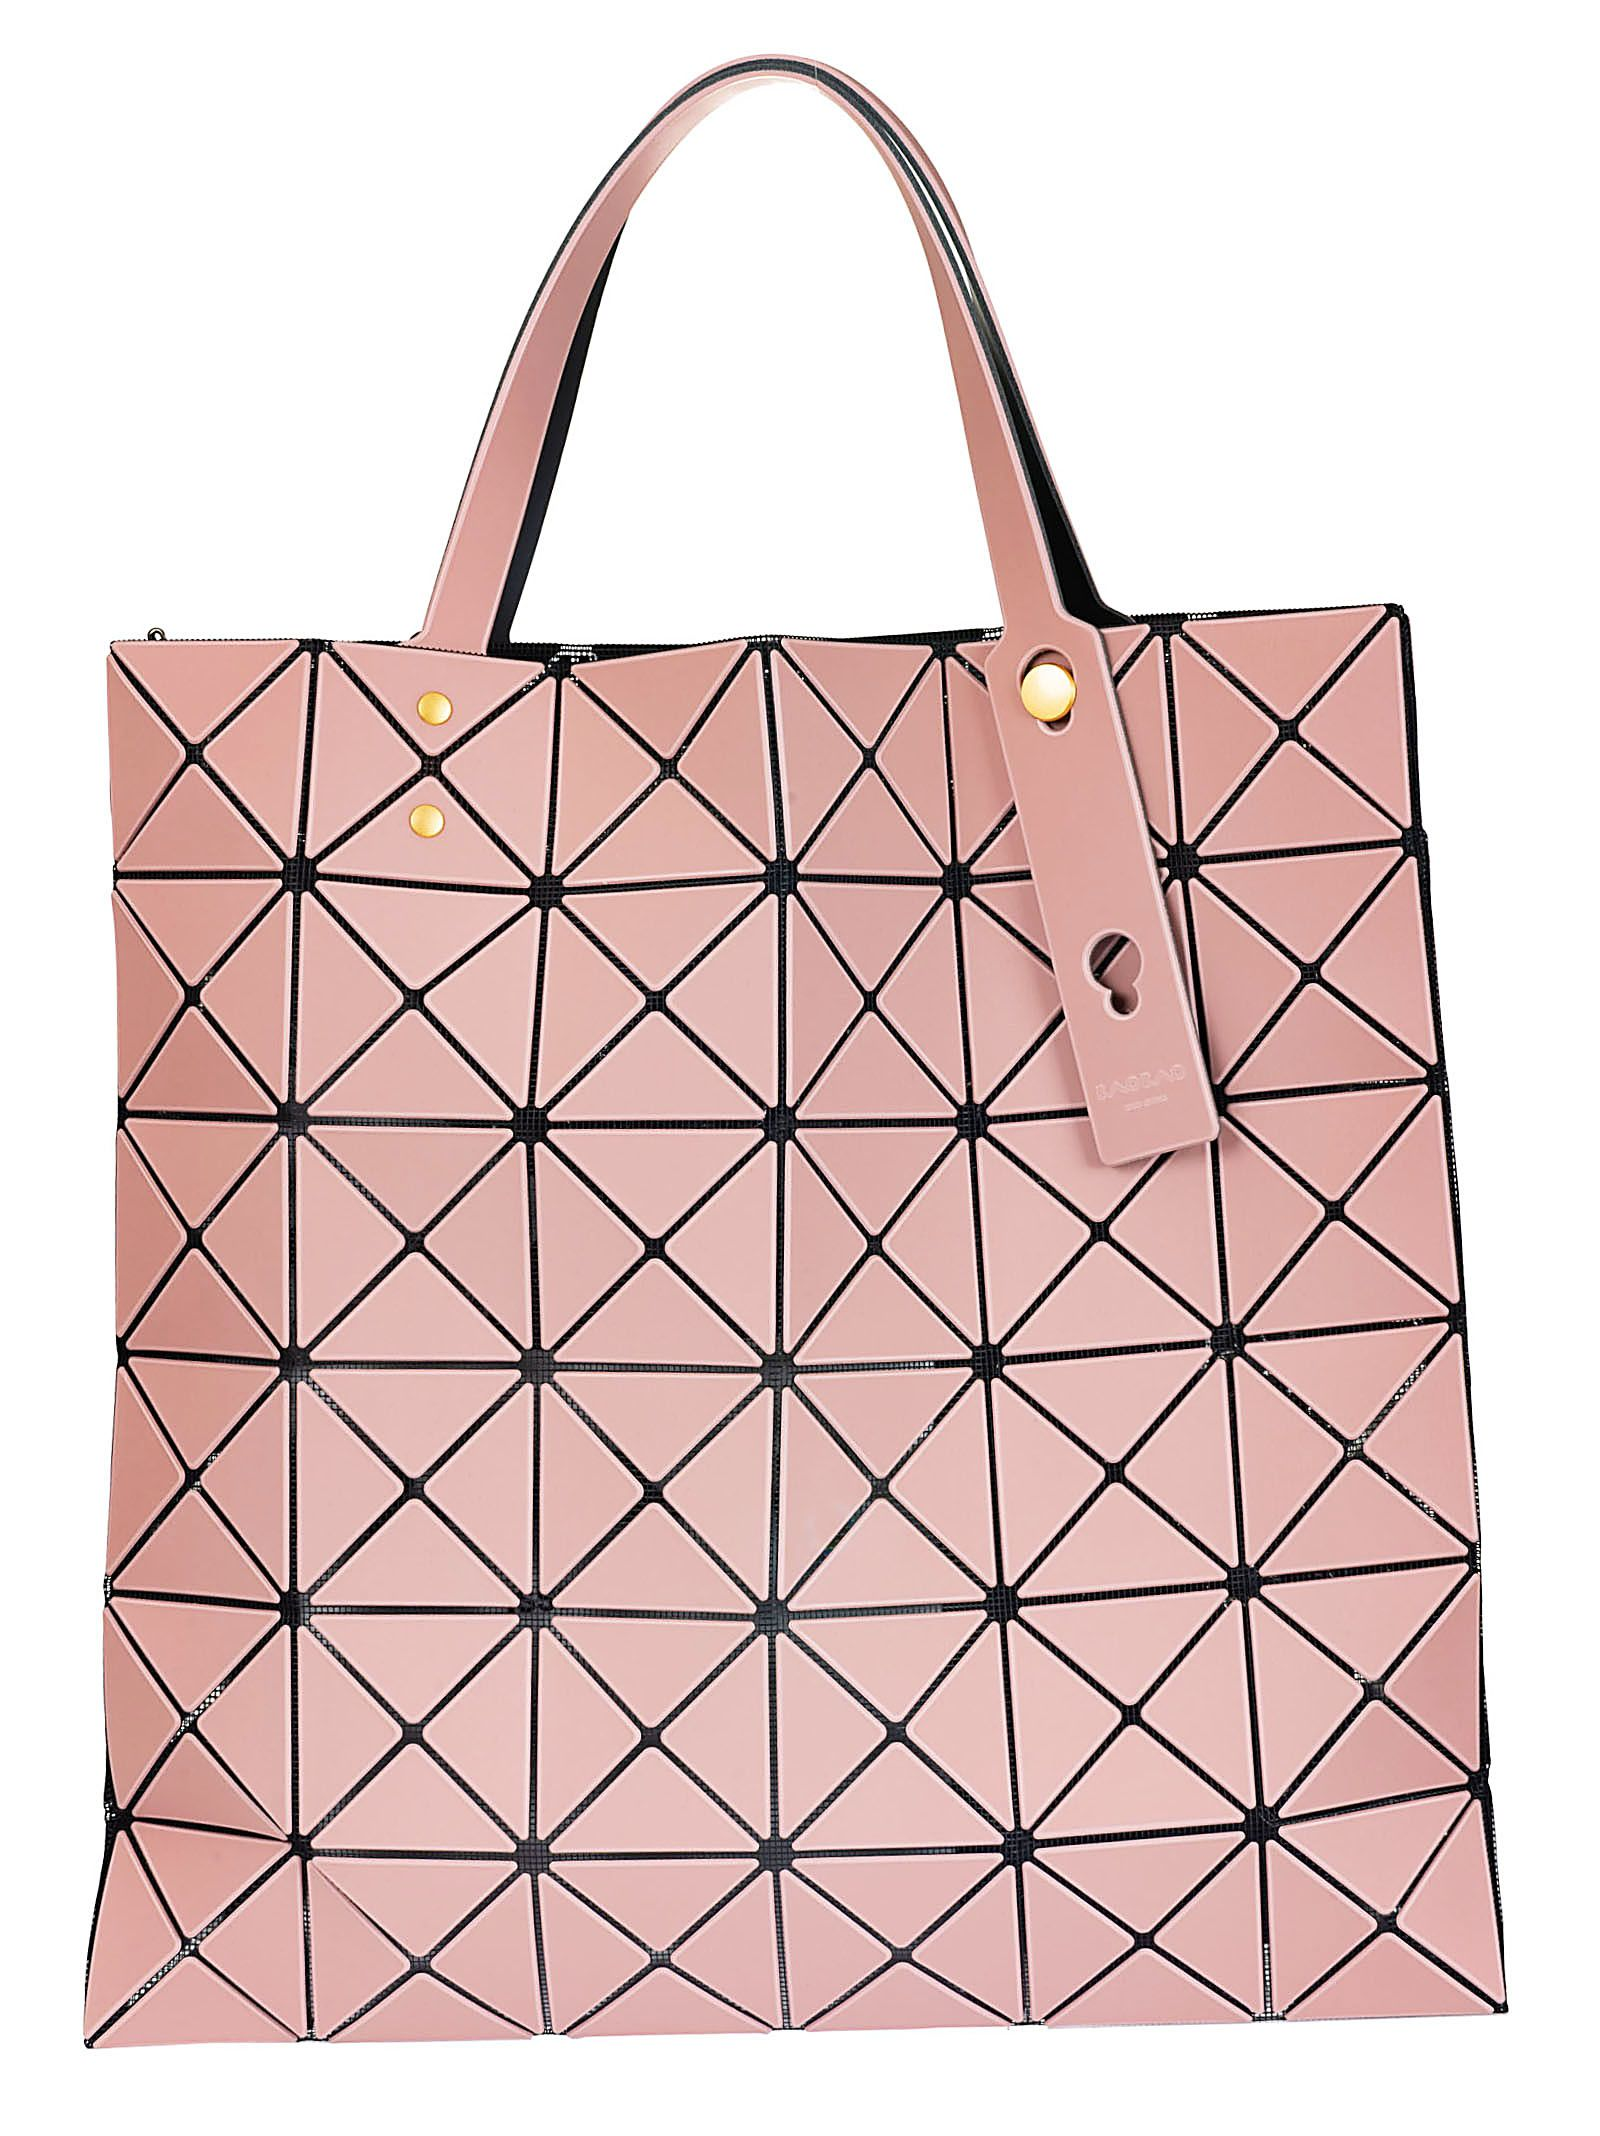 Bao Bao Issey Miyake Bao Bao Issey Miyake Lucent Frost Tote - Basic ... 43772644a7b61